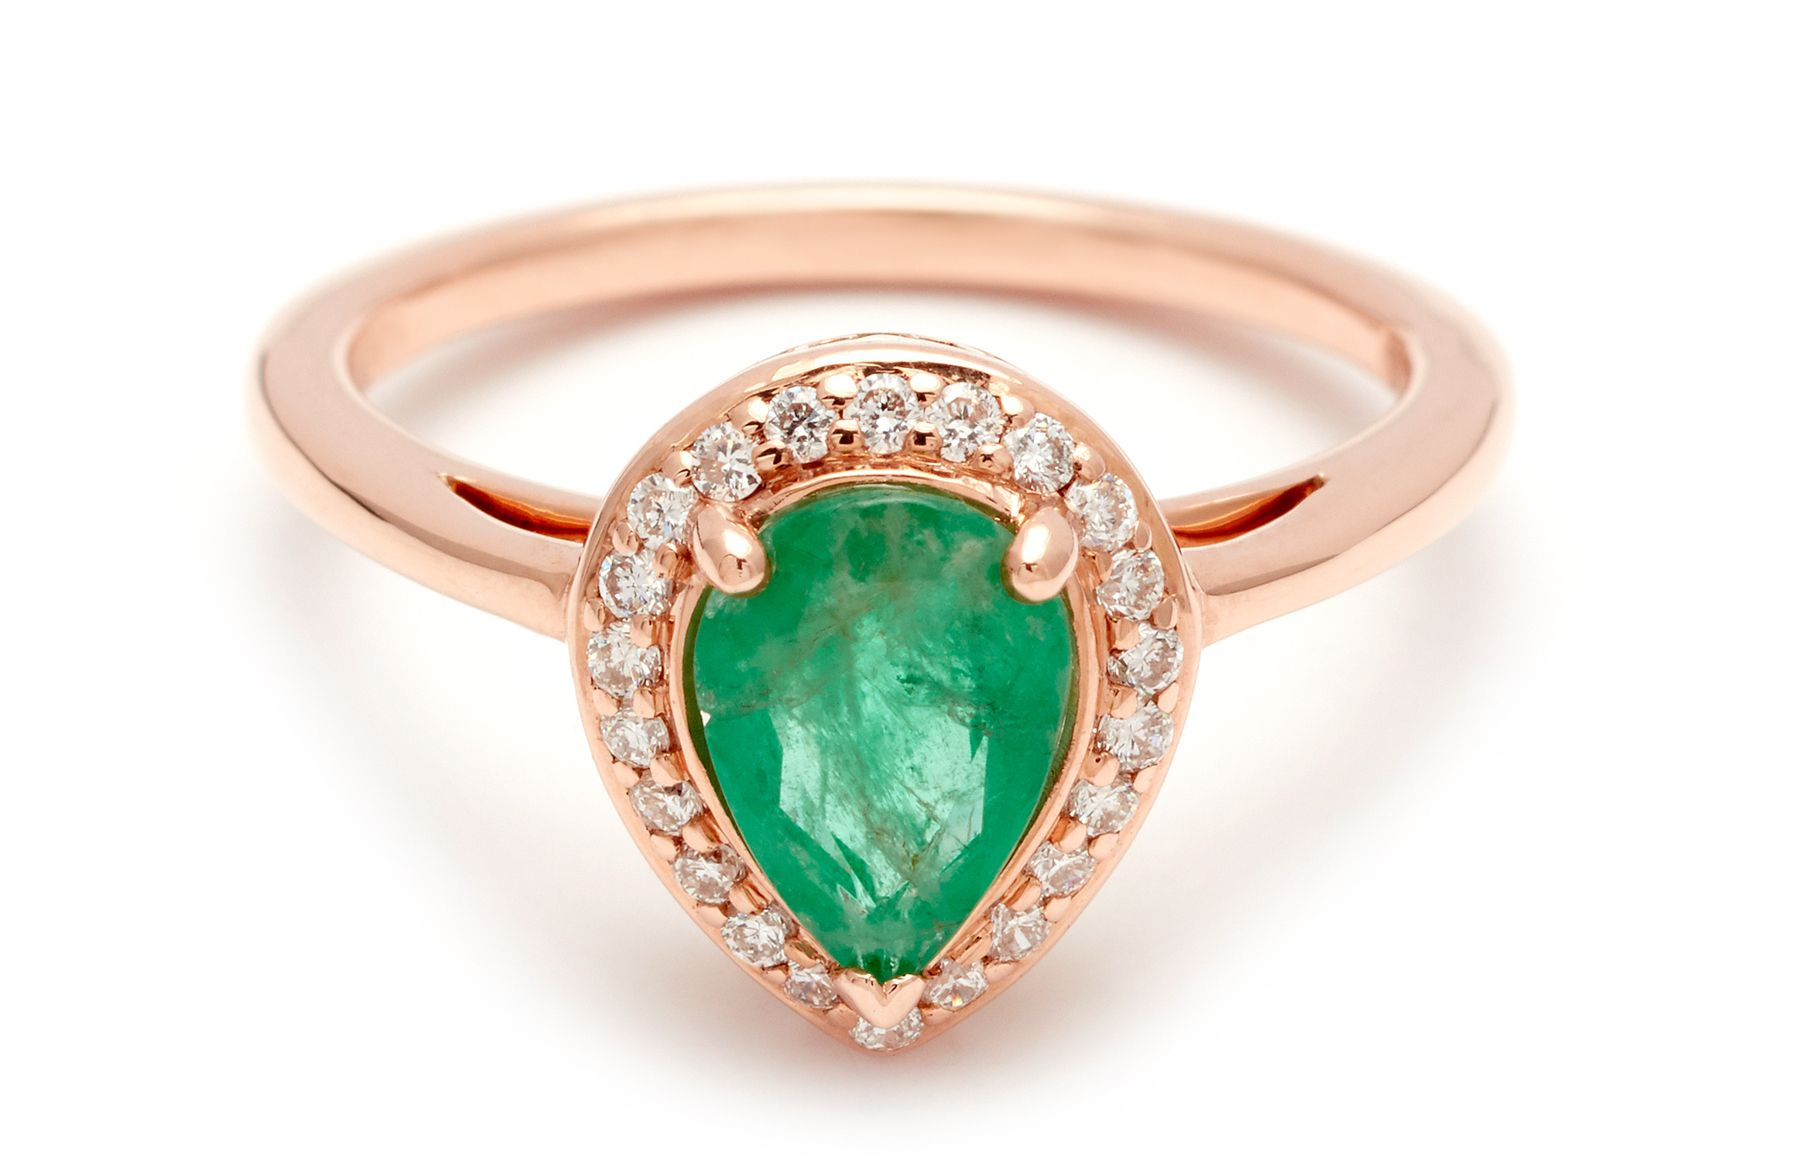 bridal engagement rings ring unique emerald r sheffield beautiful fashion anna green bea wedding hbz